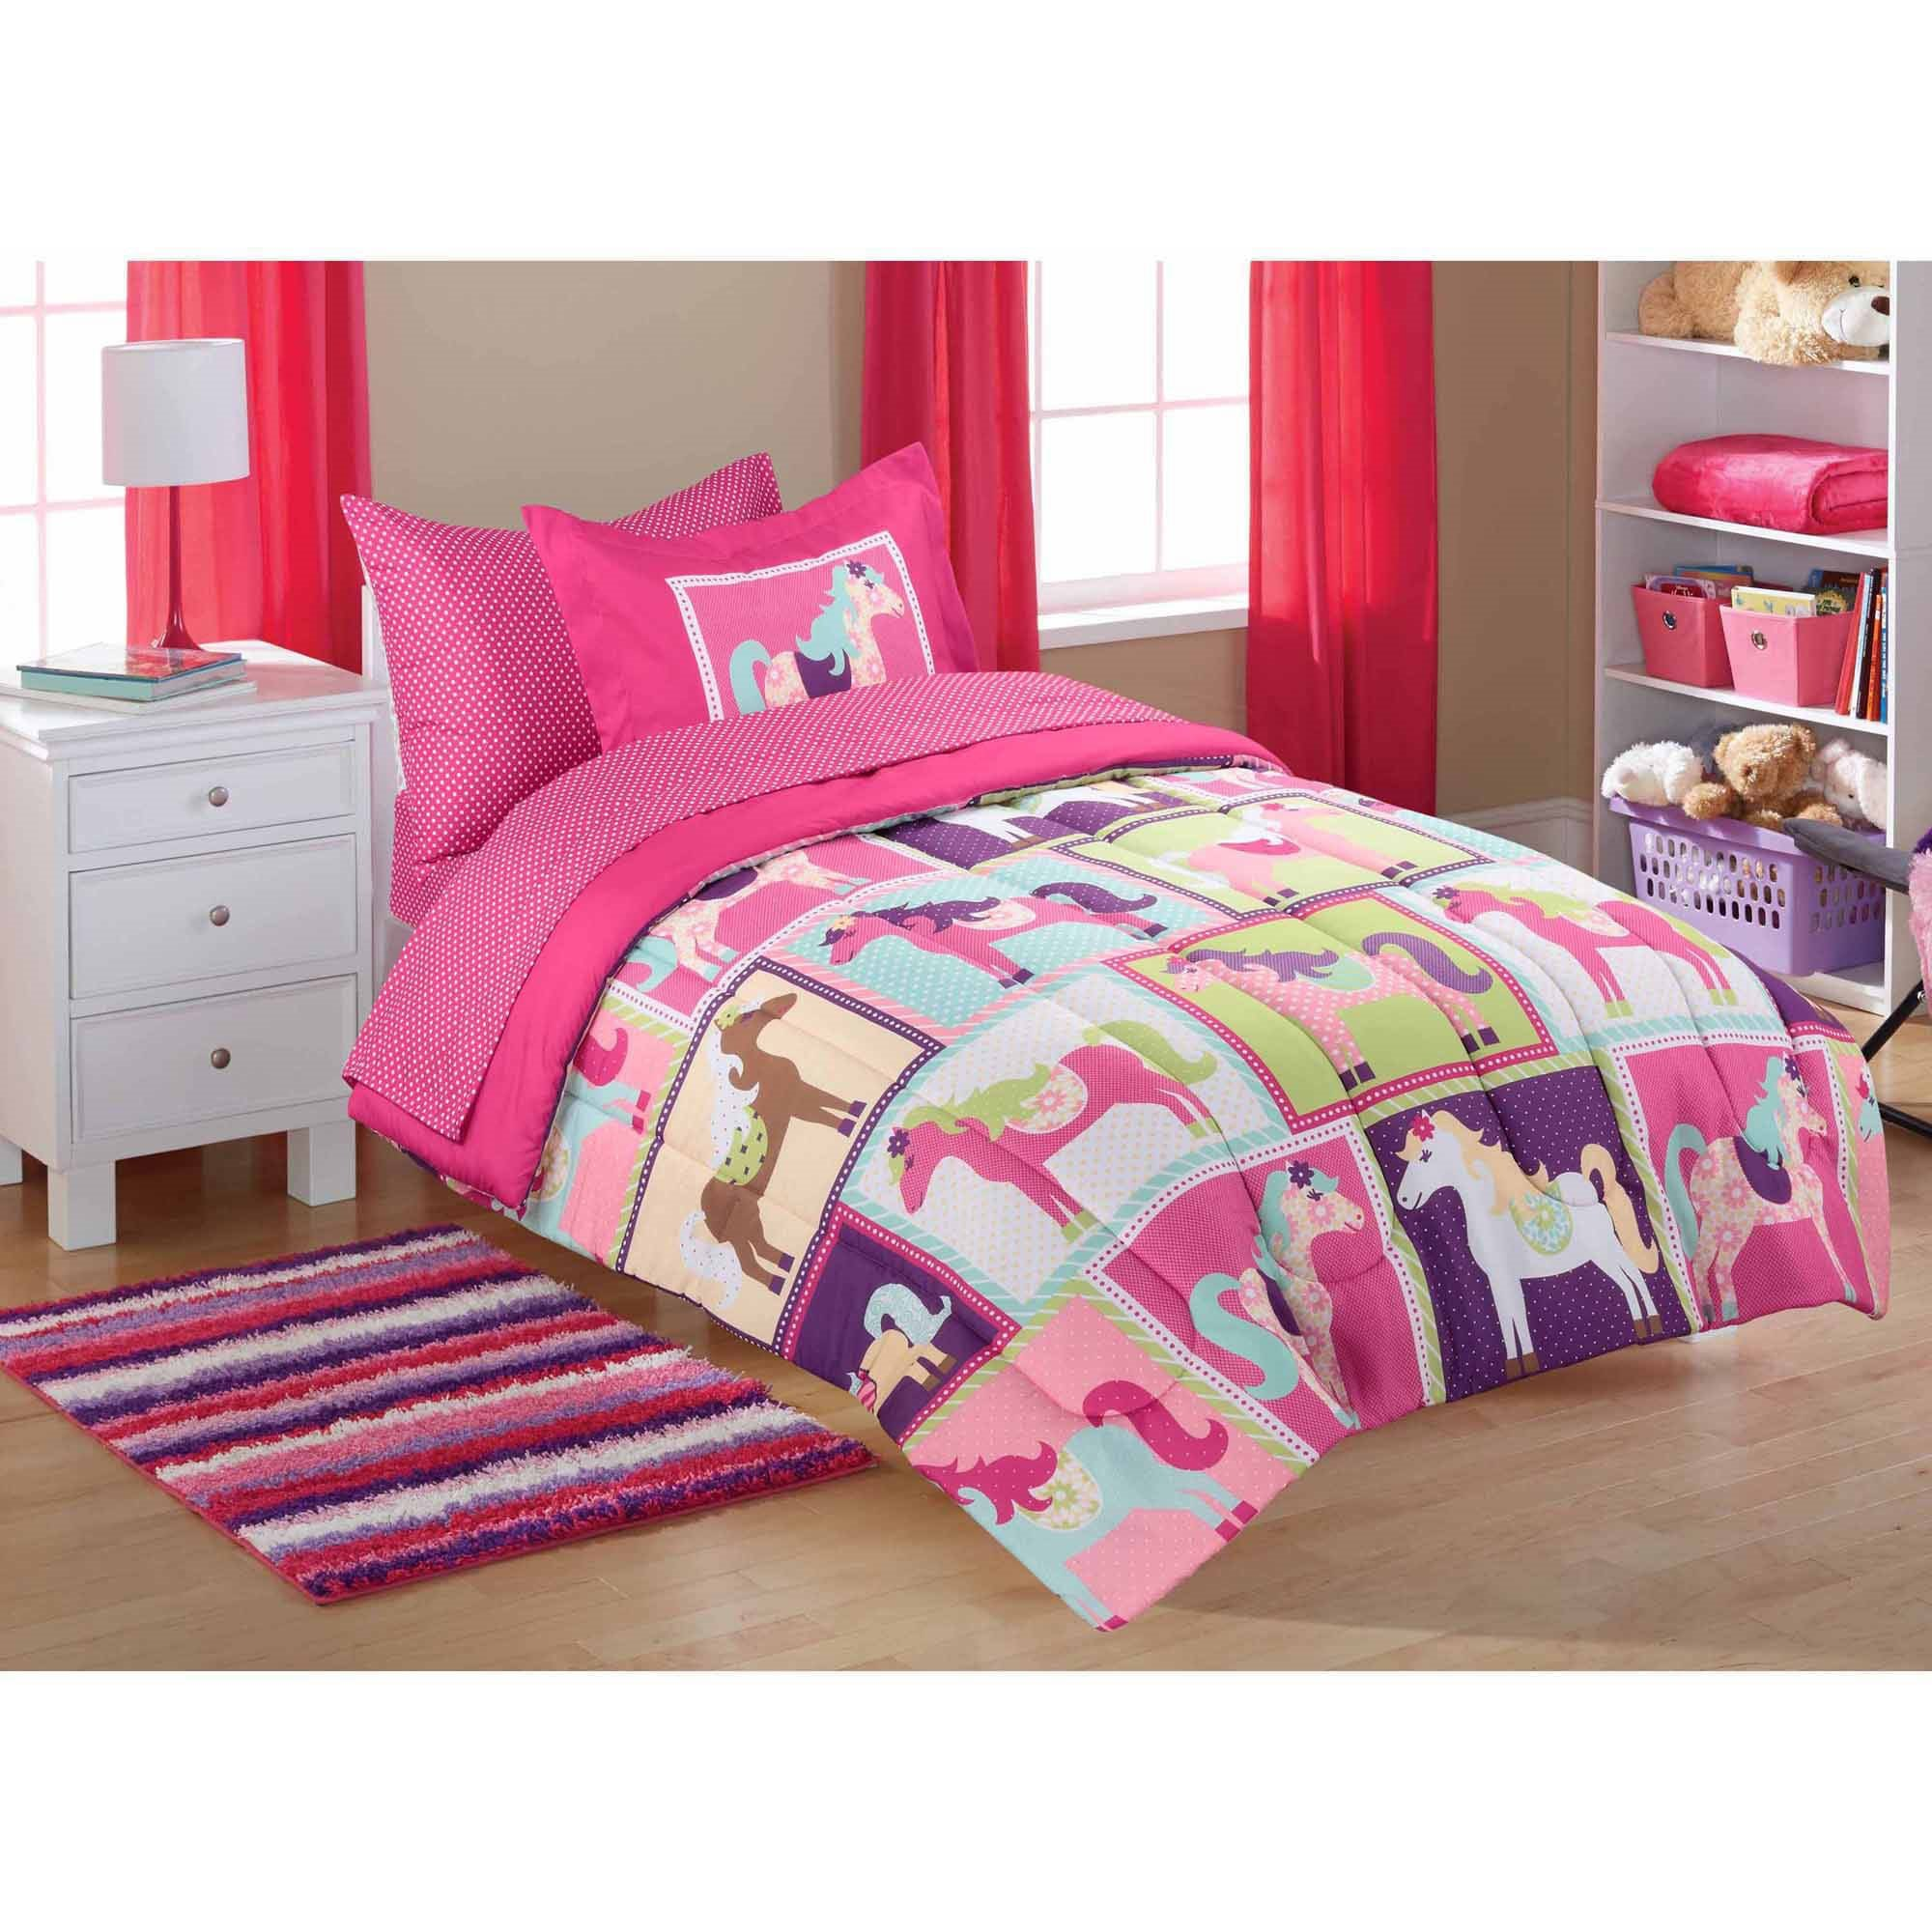 7 Piece Bed In Bag Full Rainbow Pink Assorted Unicorn Dream Bedding Squares Purple Magical Horses All Over Polka Dots Stripes Flowers Kids Girls Believe Dancing Mythical Enchanted Pegasus Polyester